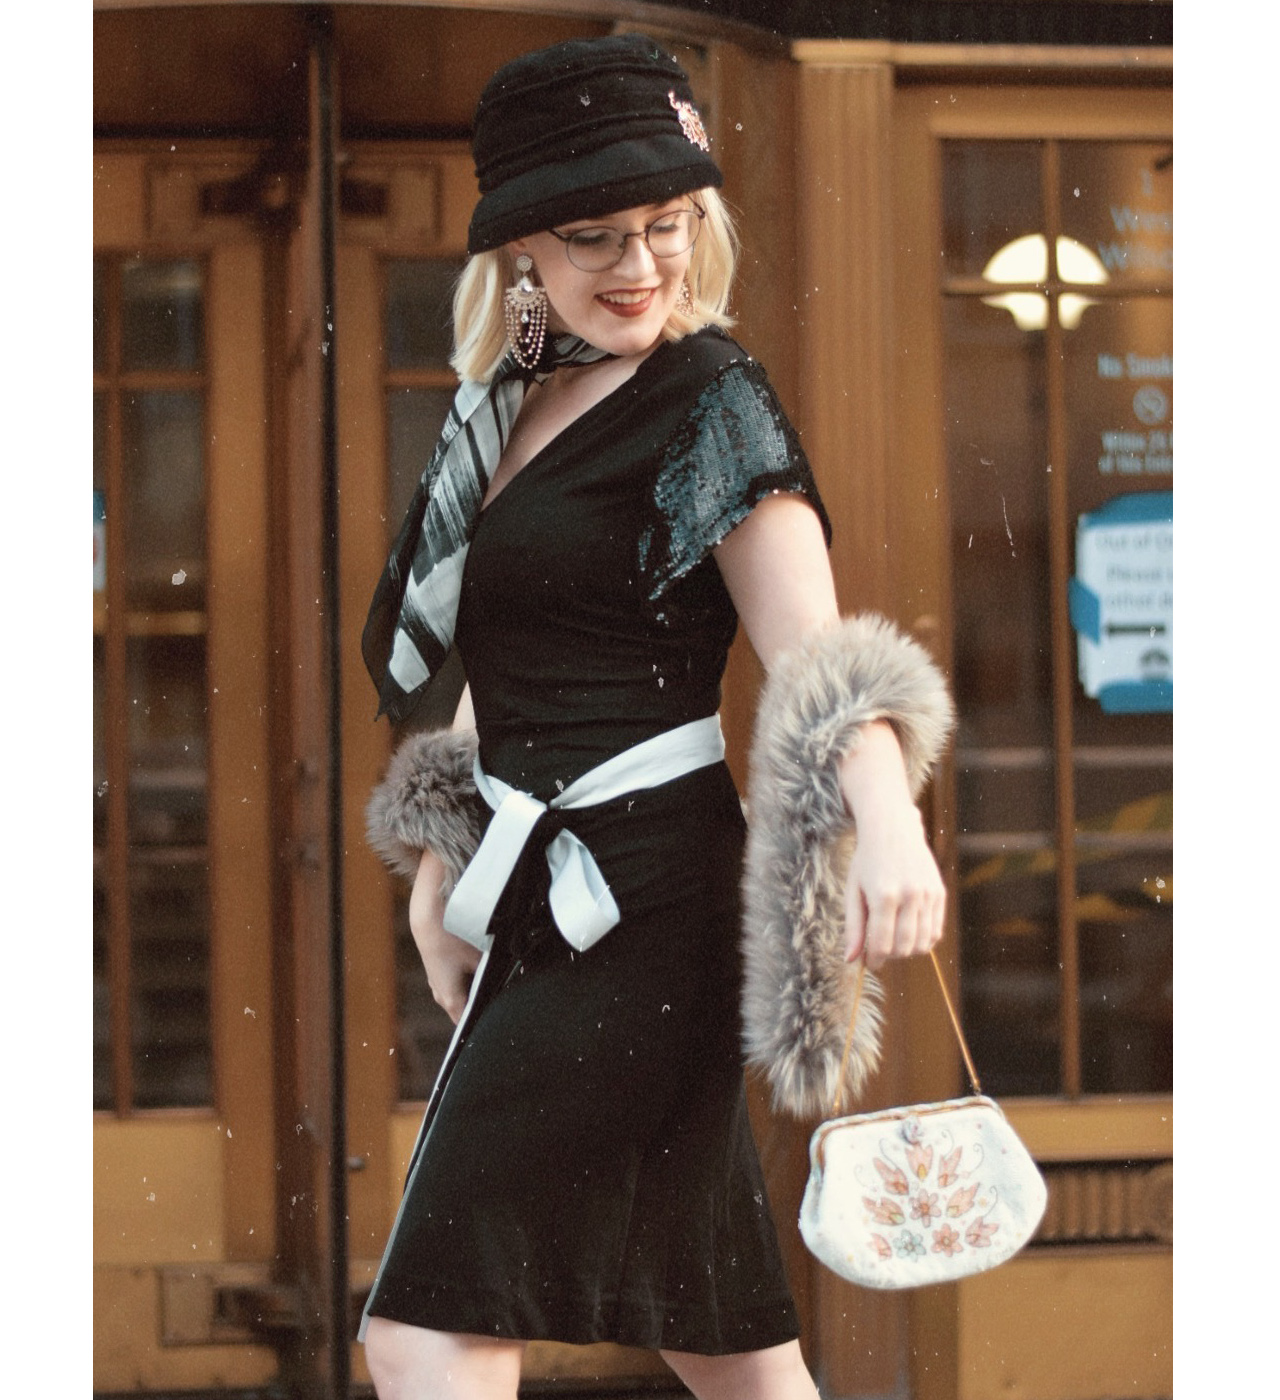 Blonde woman in a black 1920s-themed dress holding a beaded purse with a fur stole around her forearm